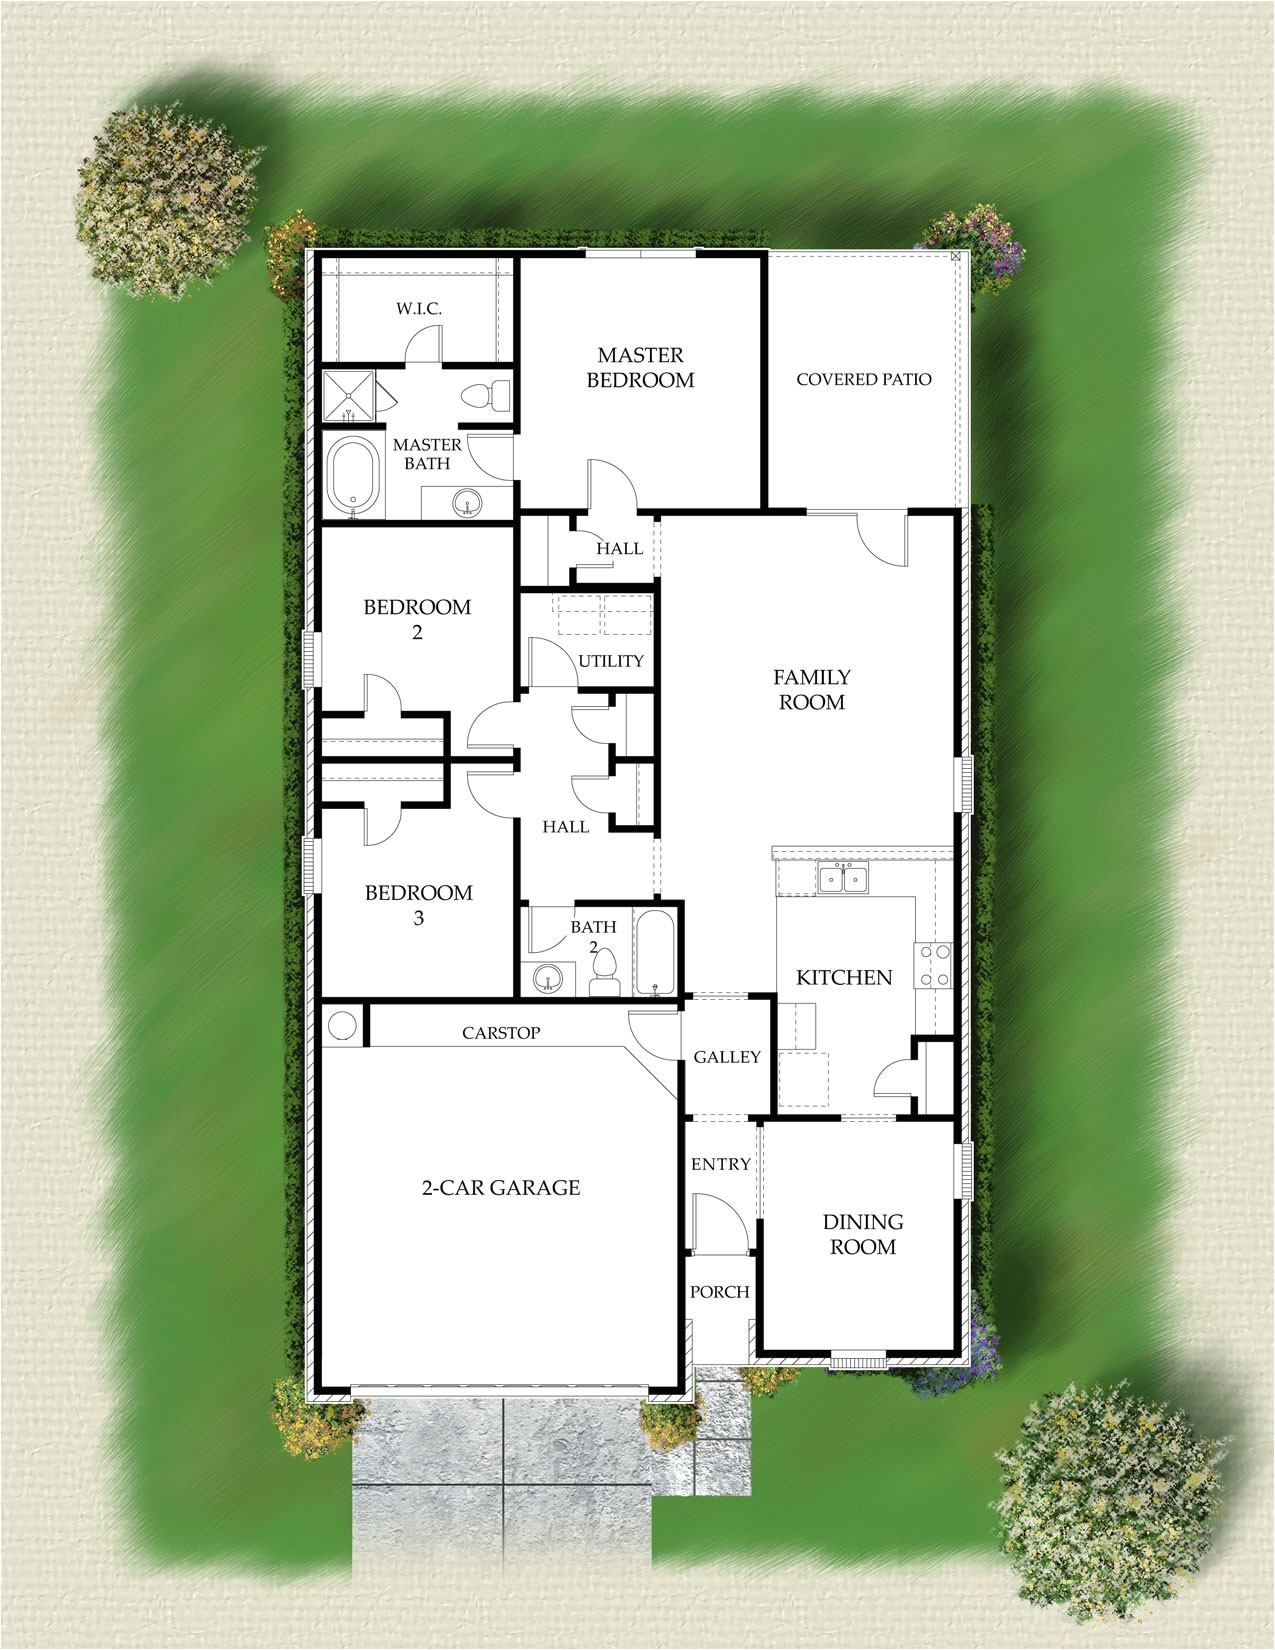 lgi homes floor plans new 28 lgi homes floor plans cypress plan at foster meadows in